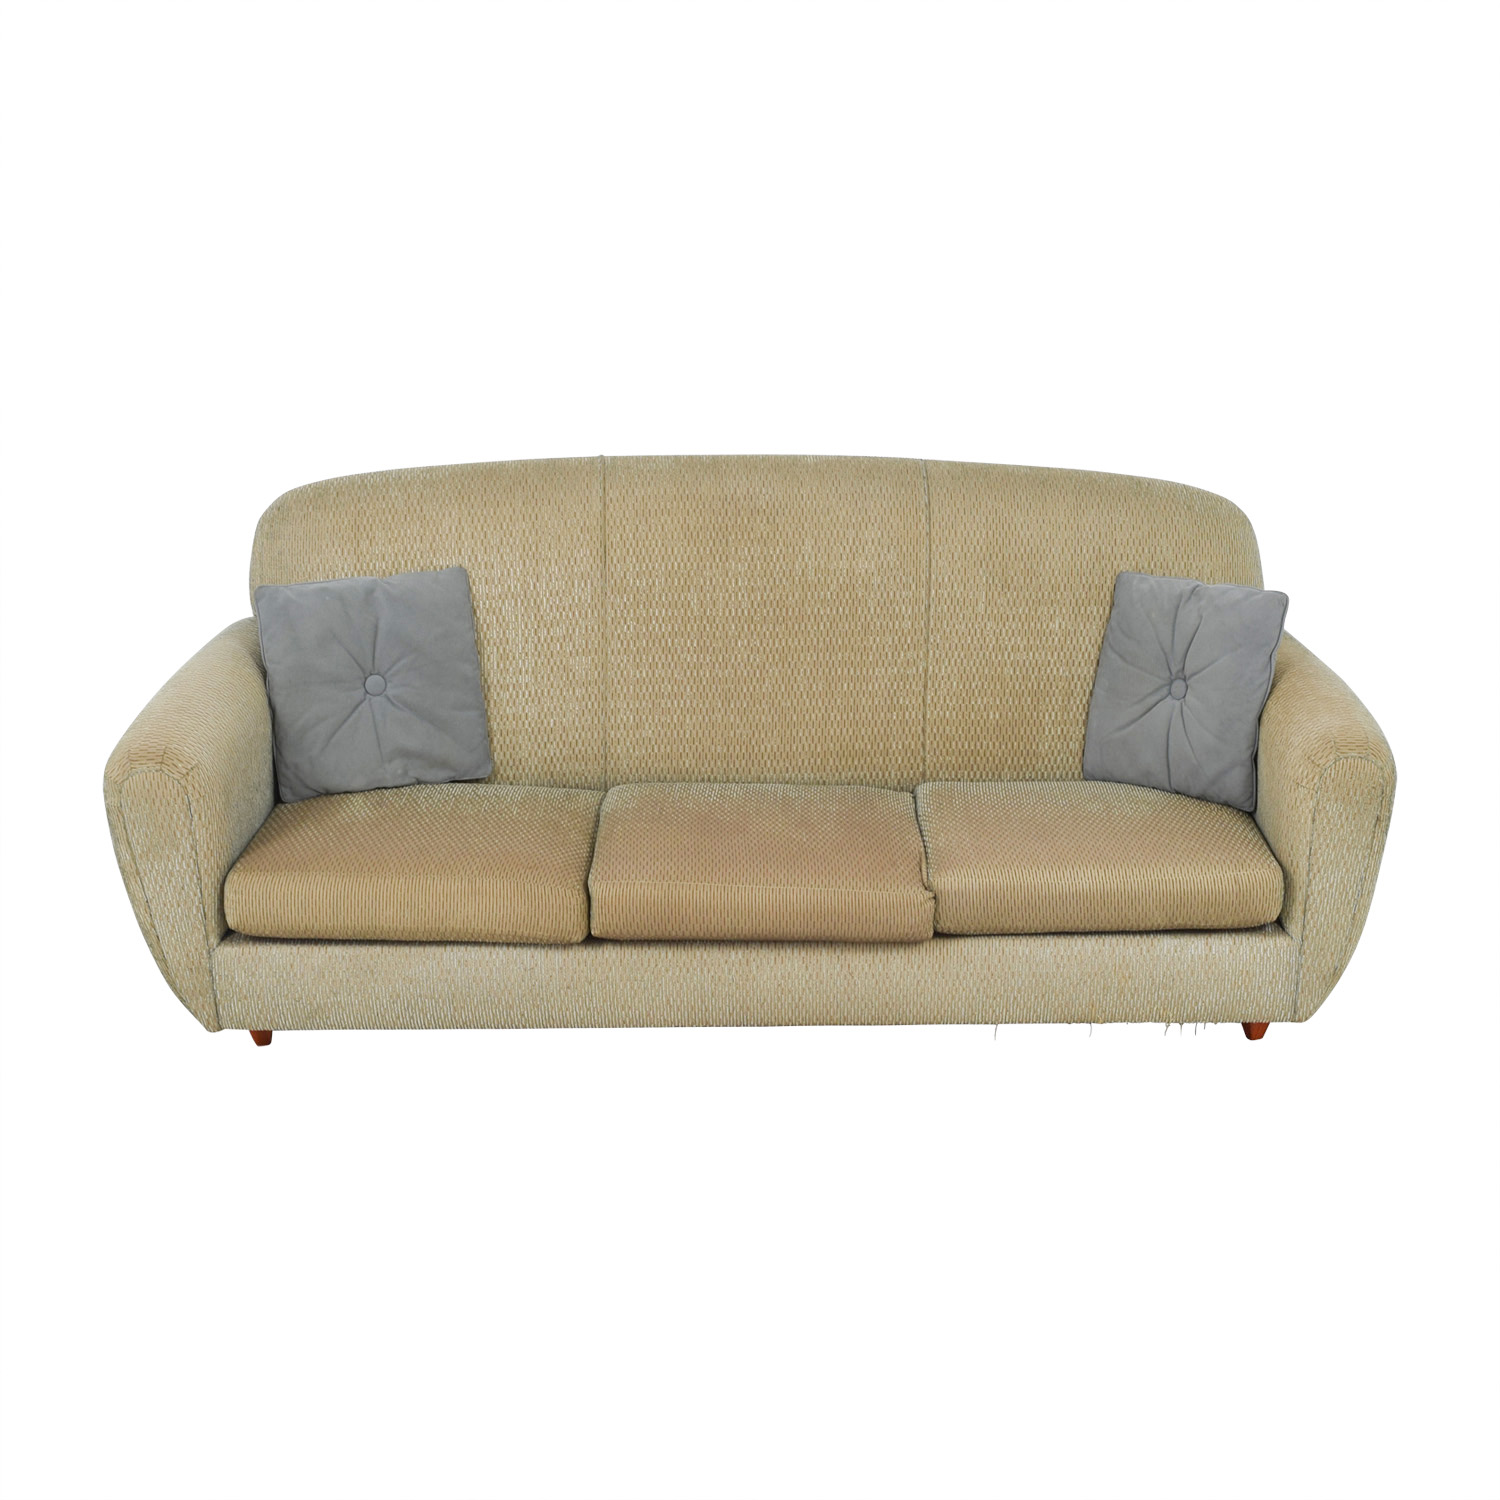 shop Green Multi-Colored Three-Cushion Sofa